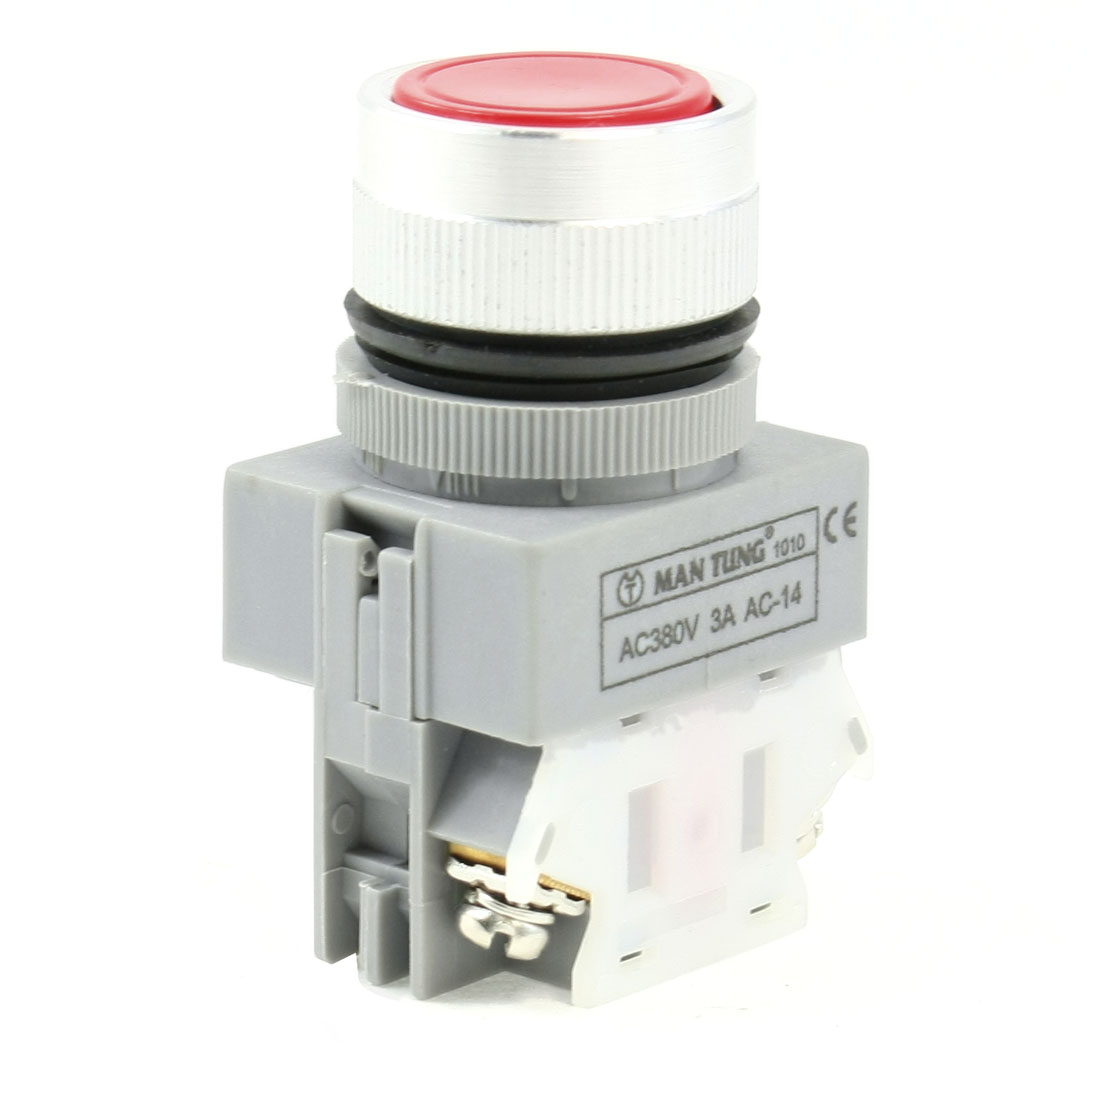 Round-Red-Cap-1NO-1NC-Non-Locking-Momentary-Push-Button-Switch-AC380V-3A